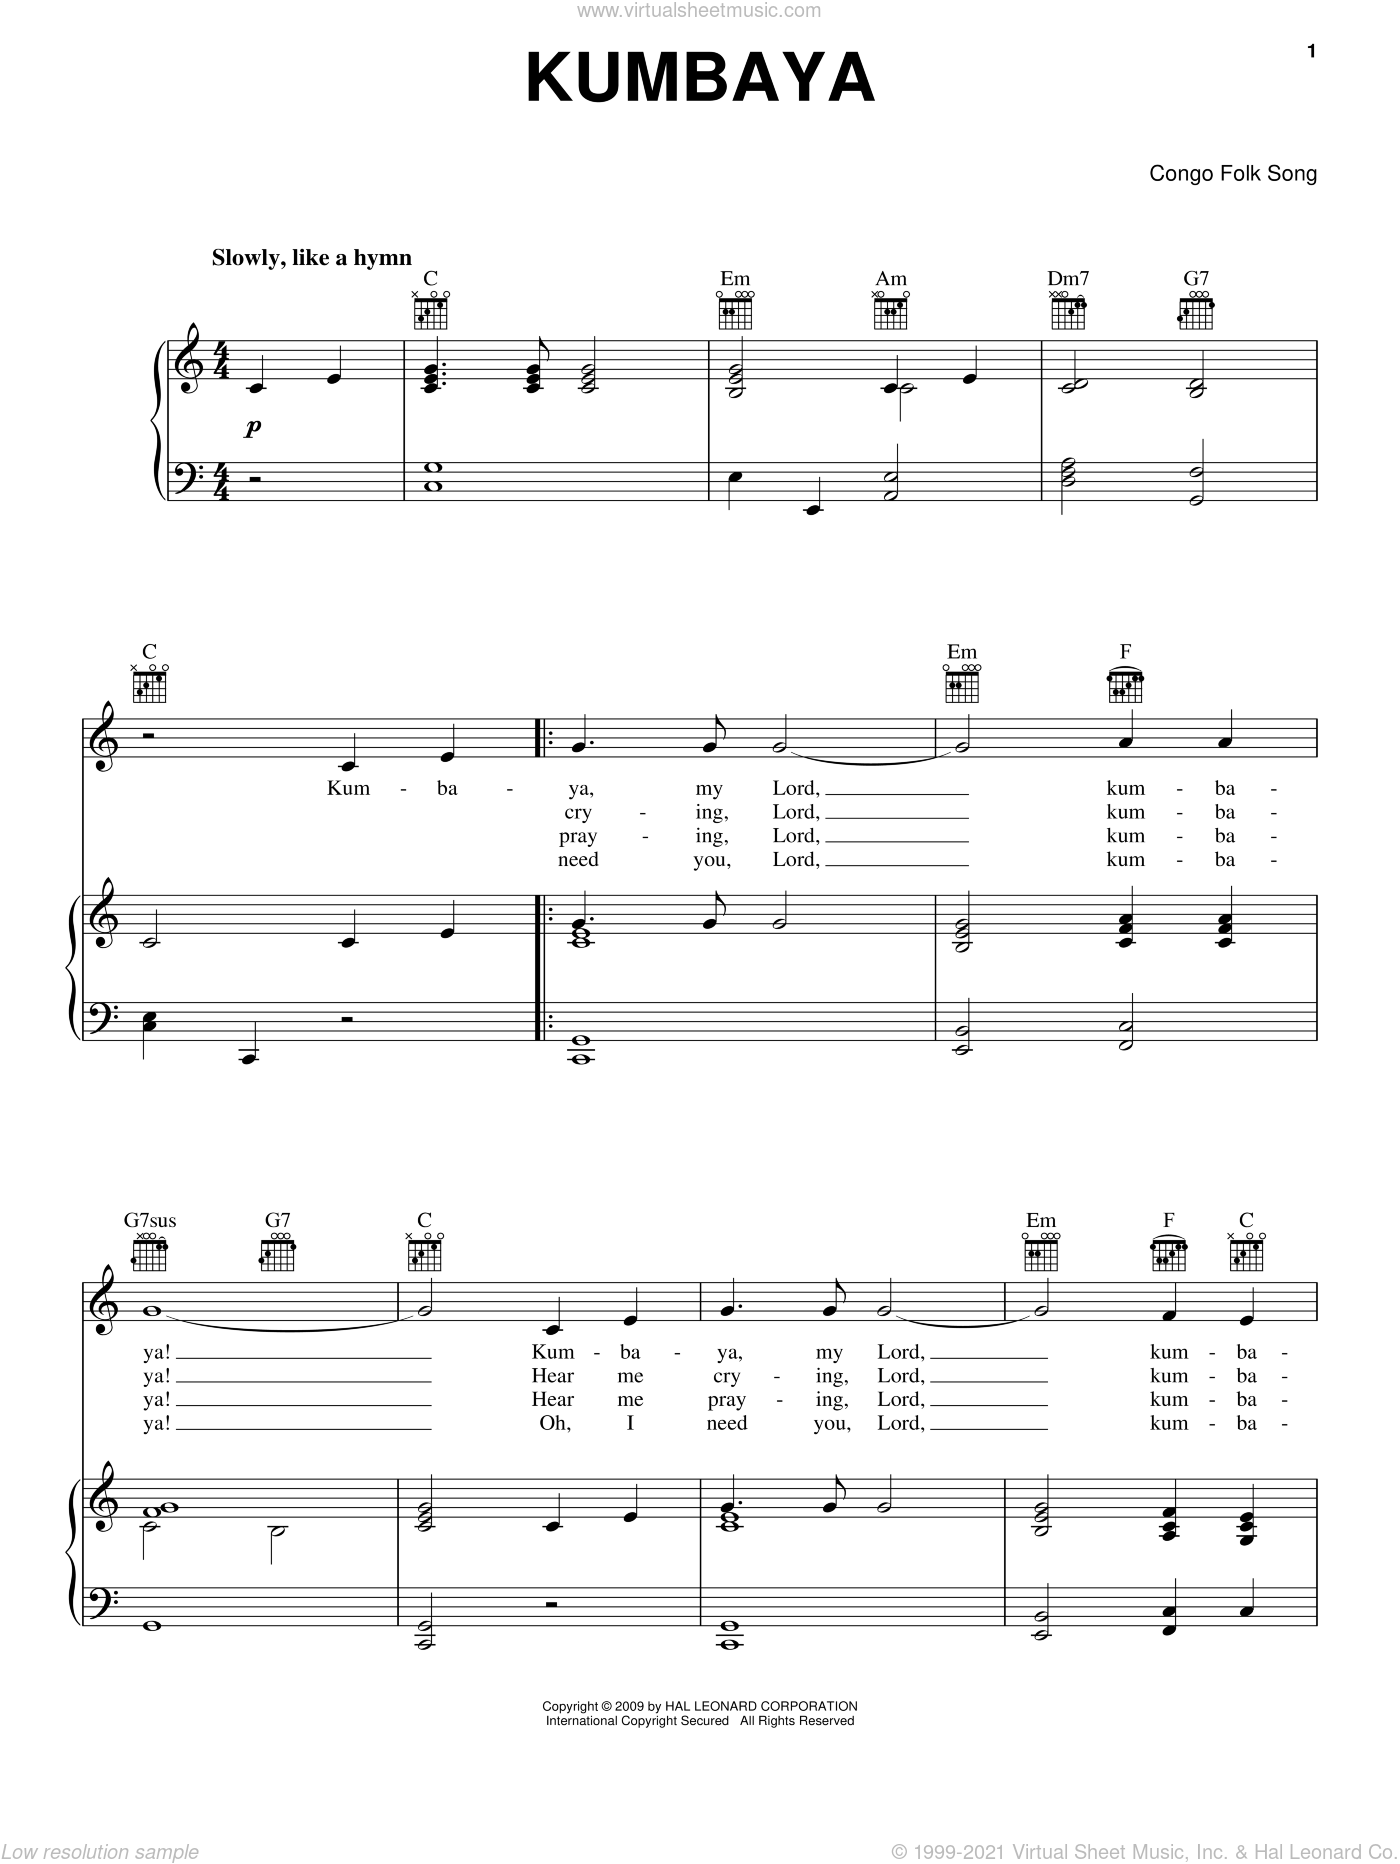 Kumbaya sheet music for voice, piano or guitar. Score Image Preview.